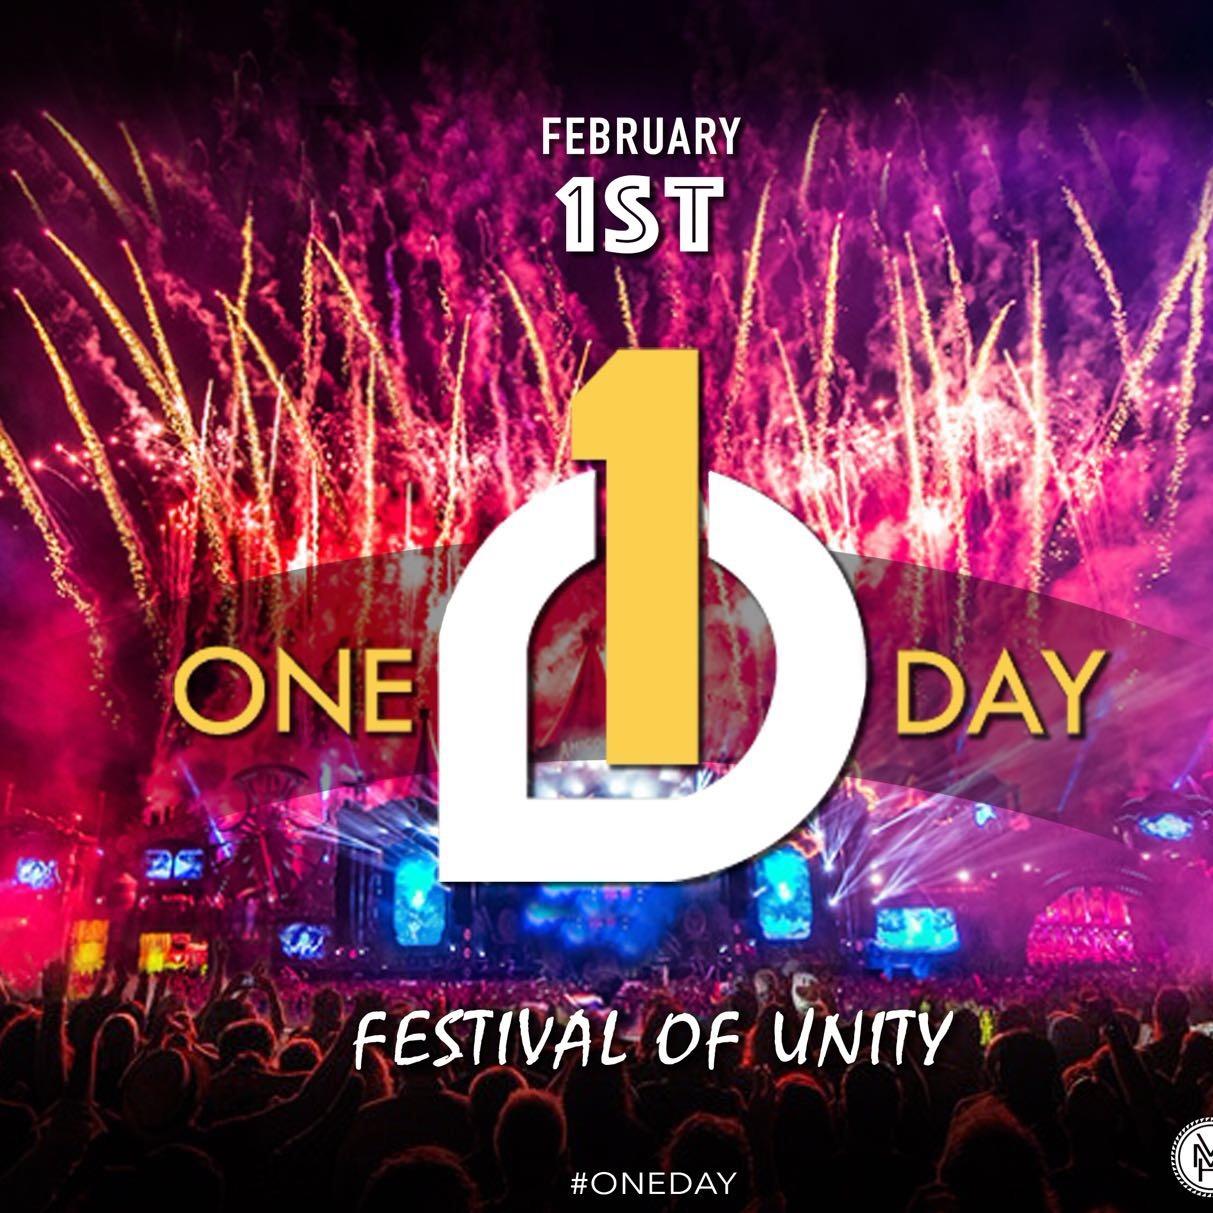 One Day - Cooler Fete